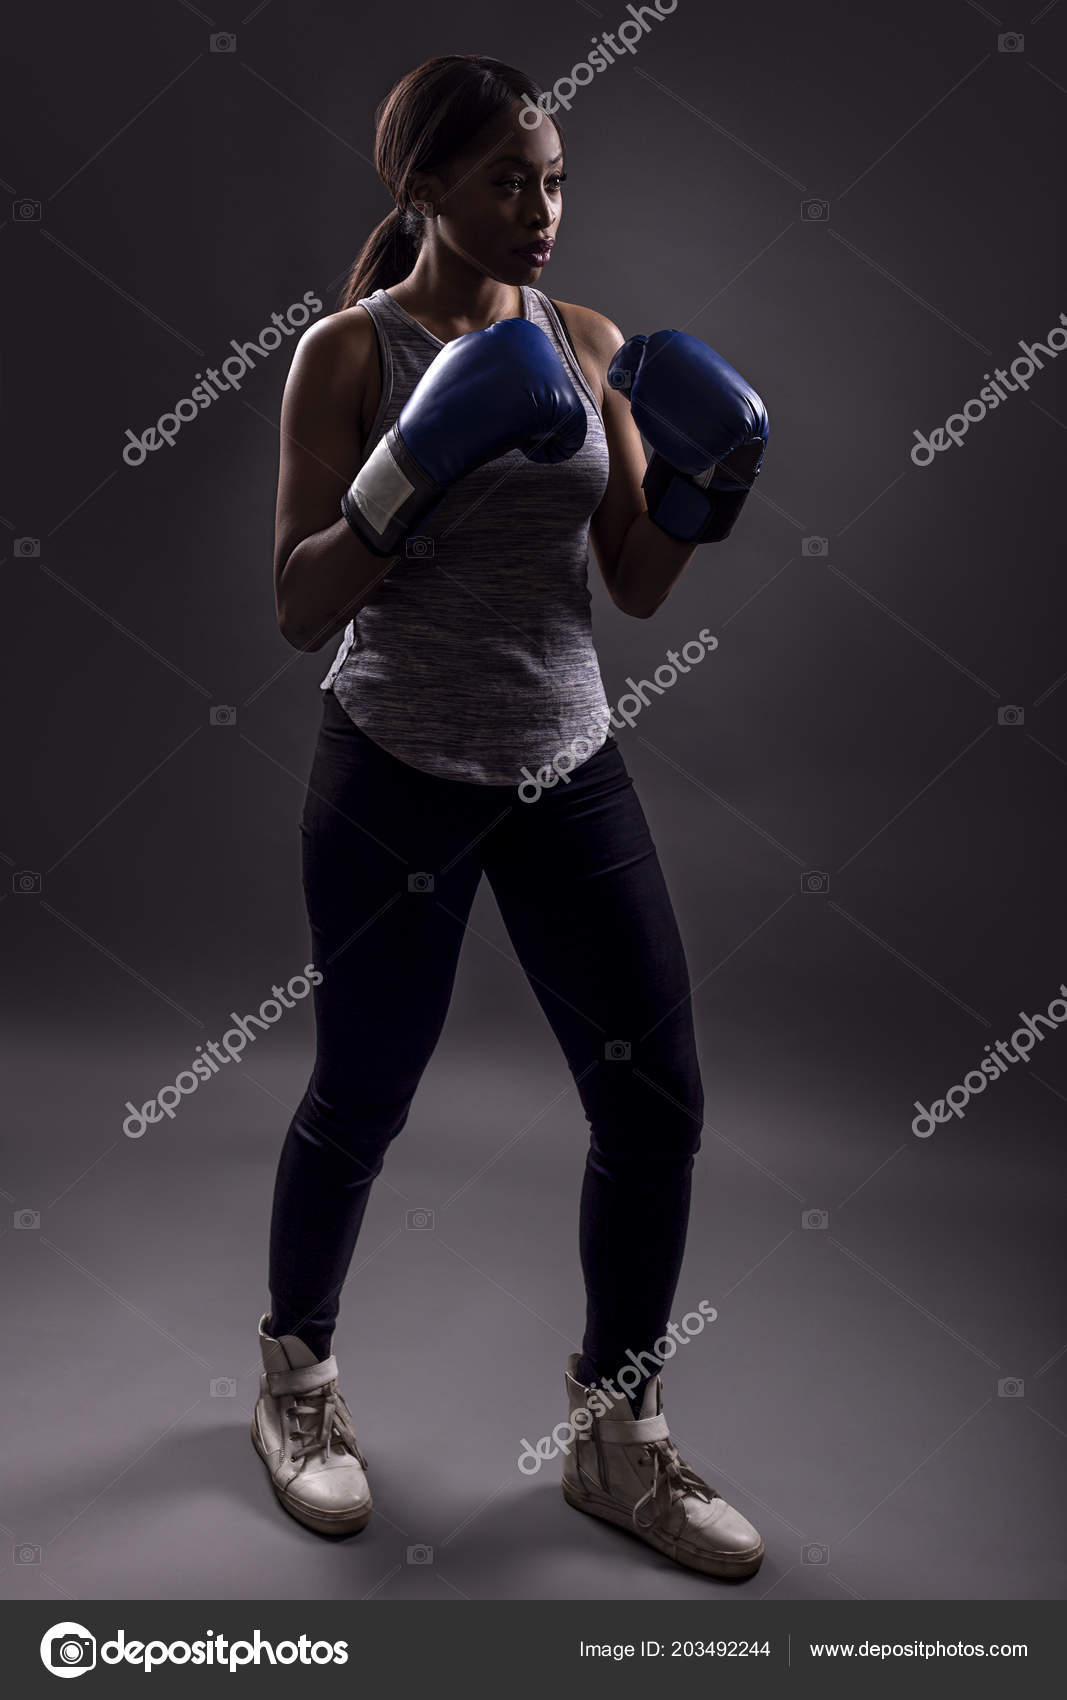 Partial Silhouette Athletic Black Female Wearing Boxing Gloves